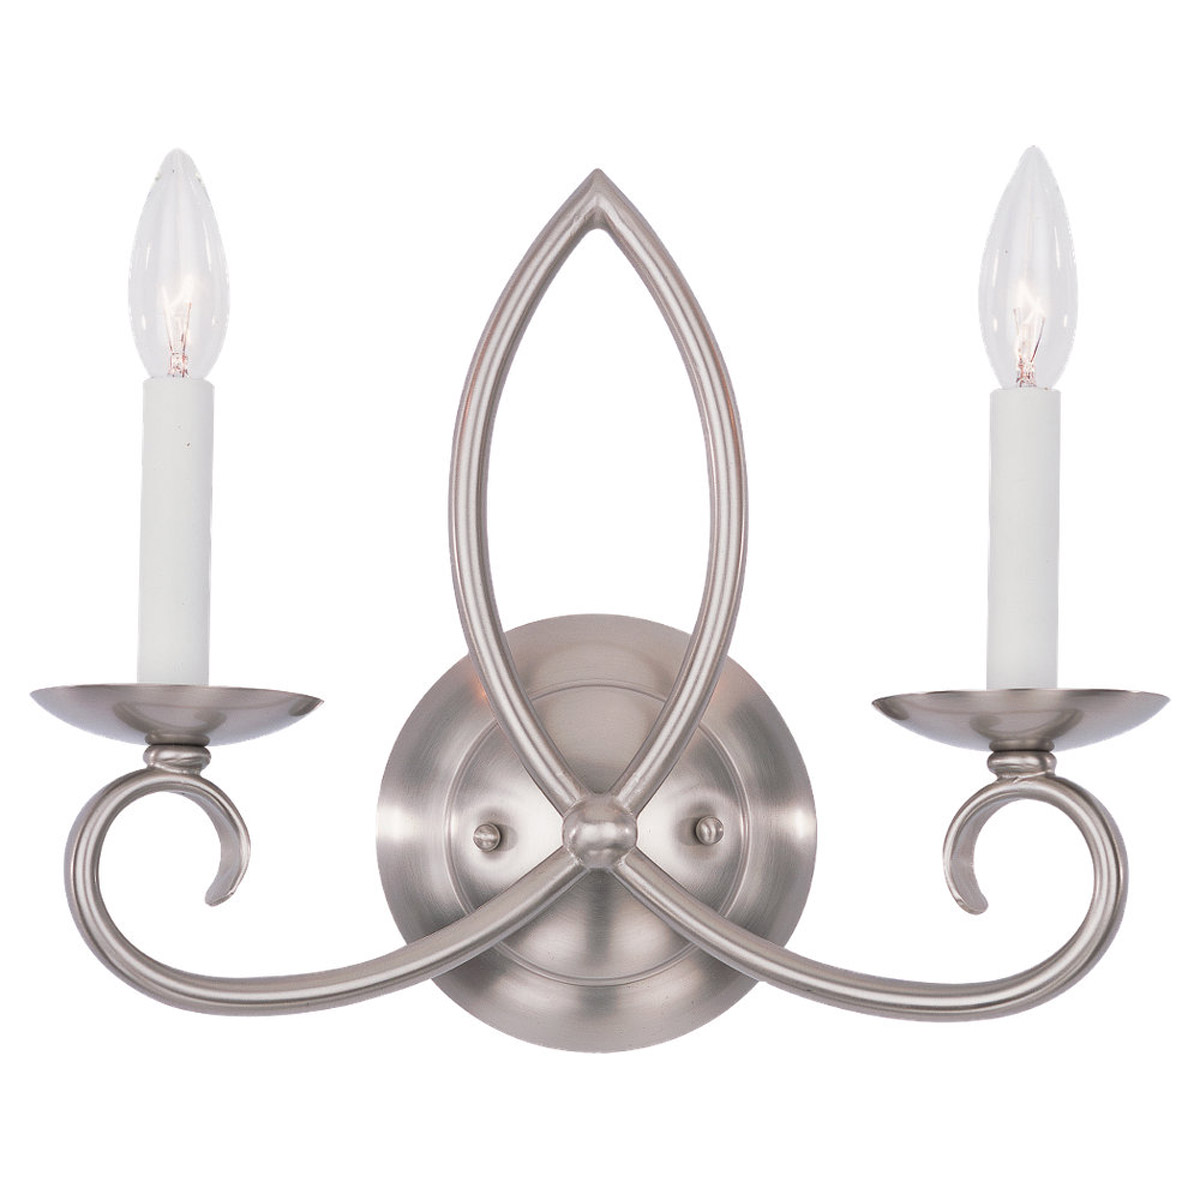 Sea Gull Lighting Pemberton 2 Light Bath Vanity in Brushed Nickel 41074-962 photo